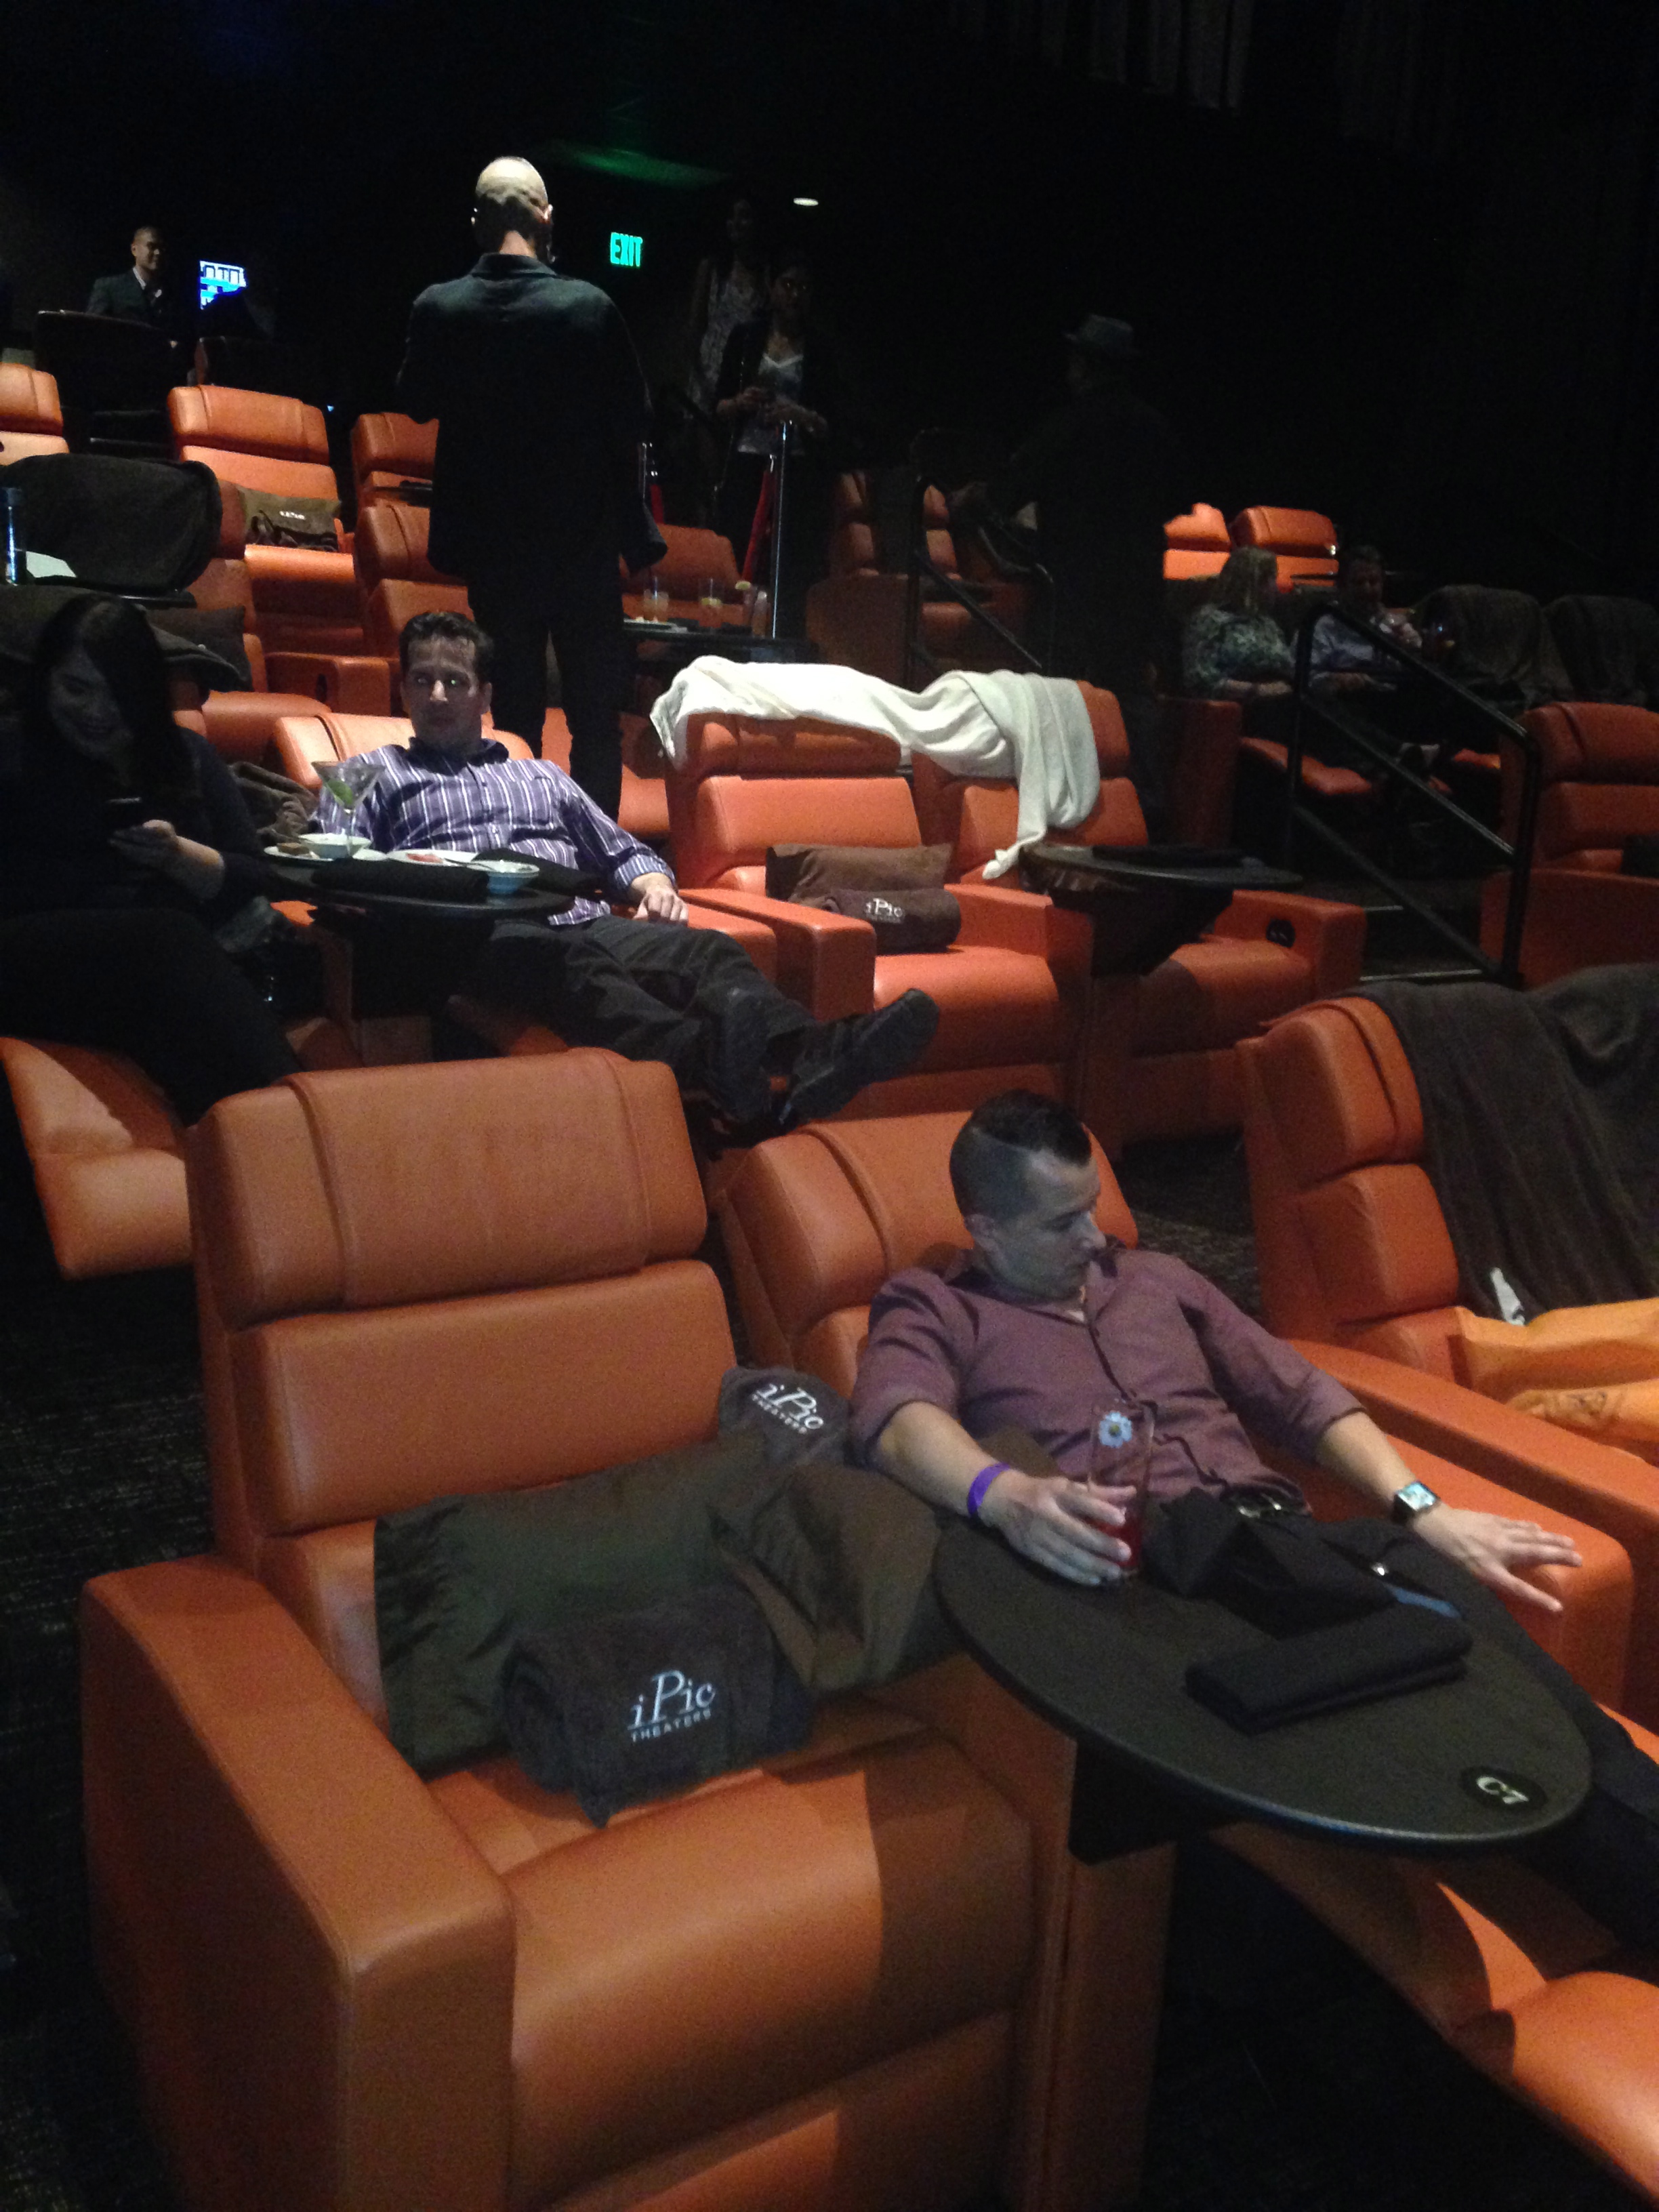 Ipic Theaters Dine And Travel Blog